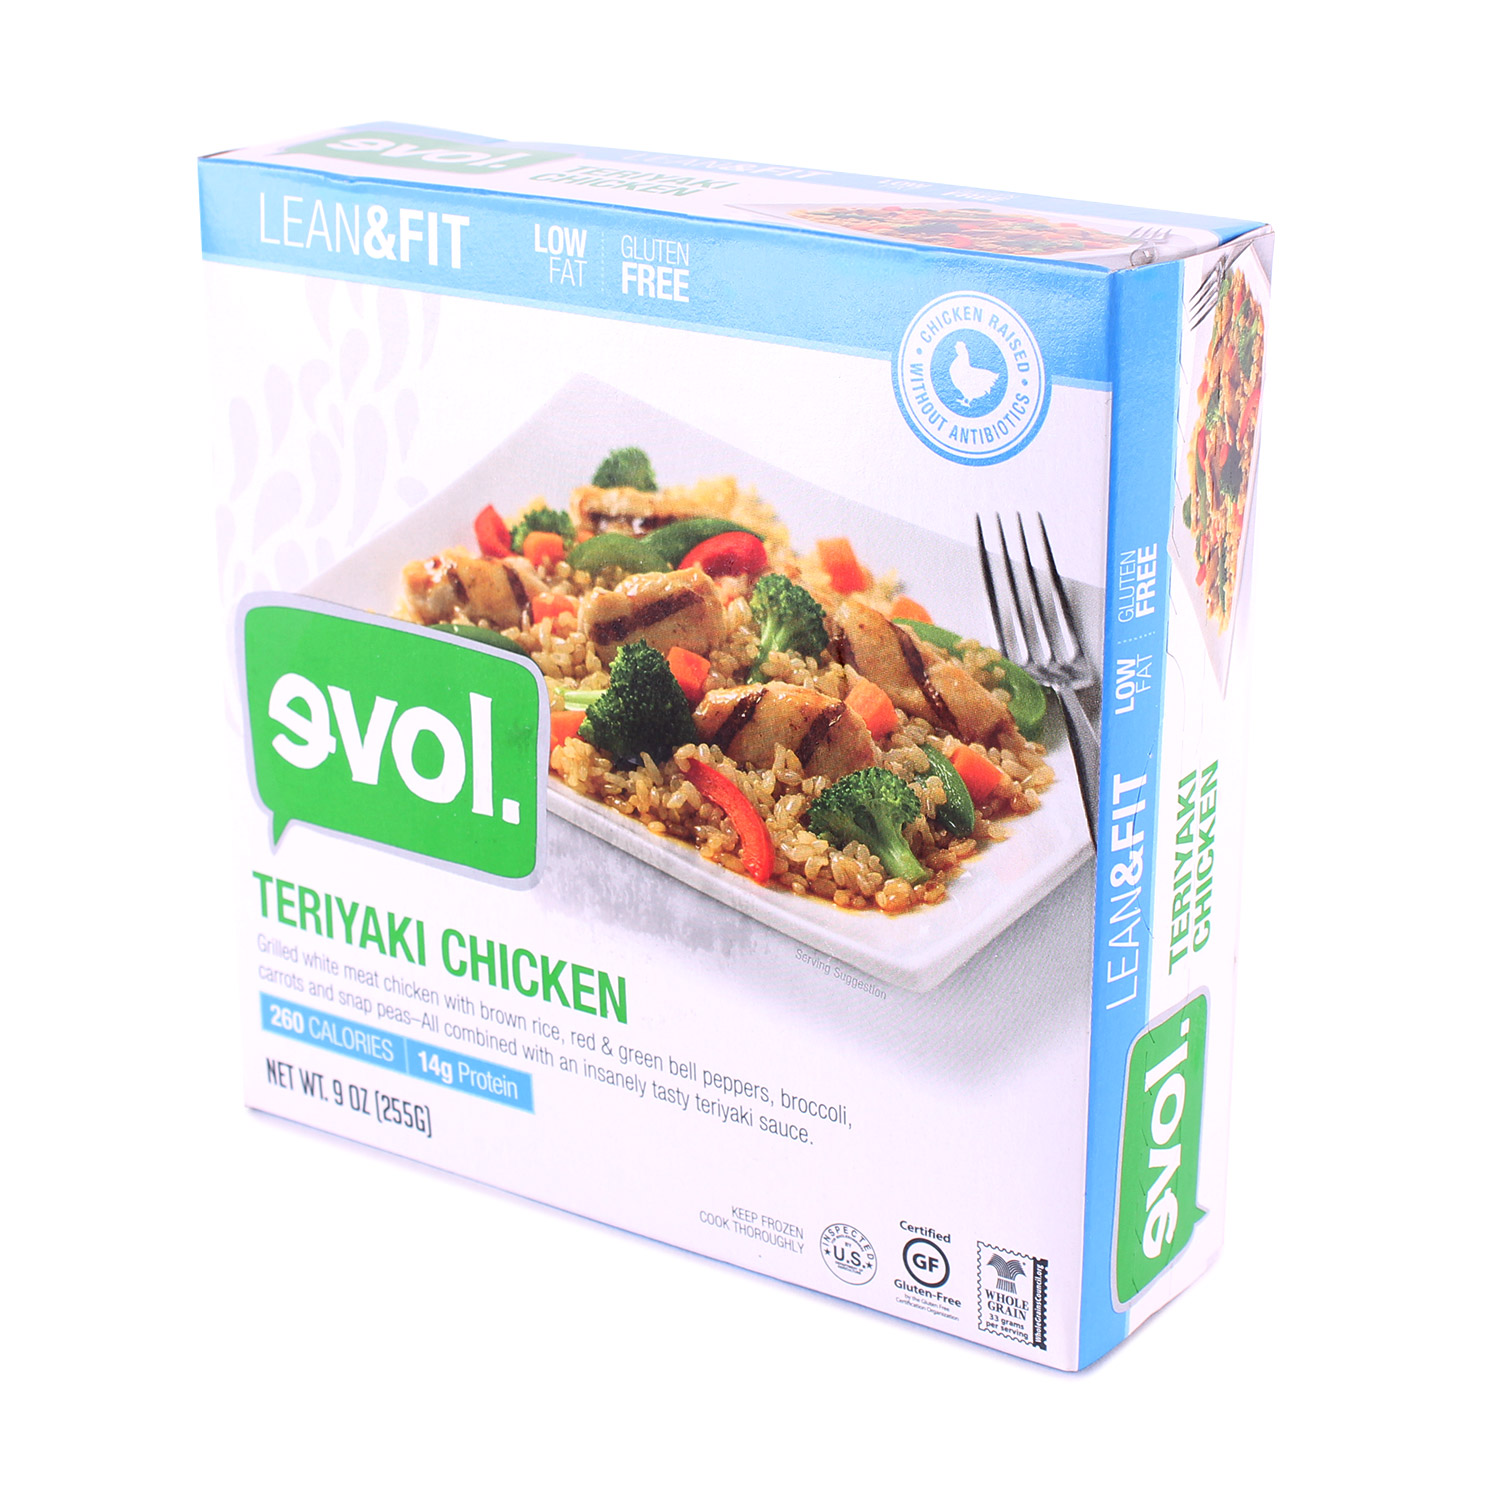 Single Serve Meal, Teriyaki Chicken